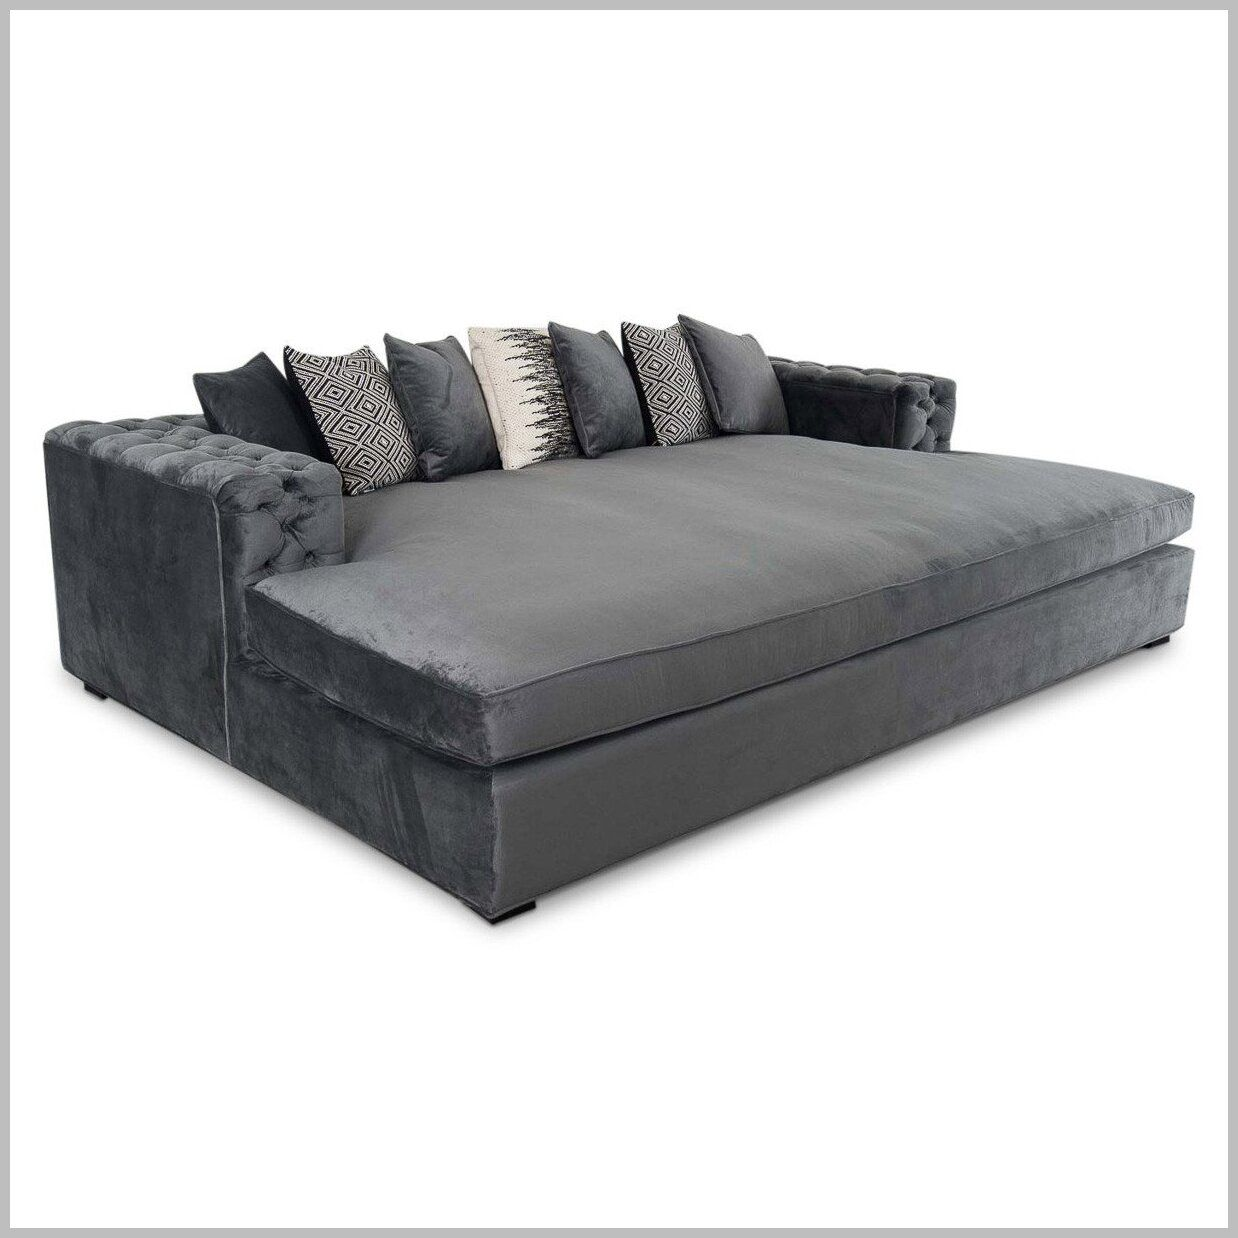 Pin On Sofa Bed 3 Seater White